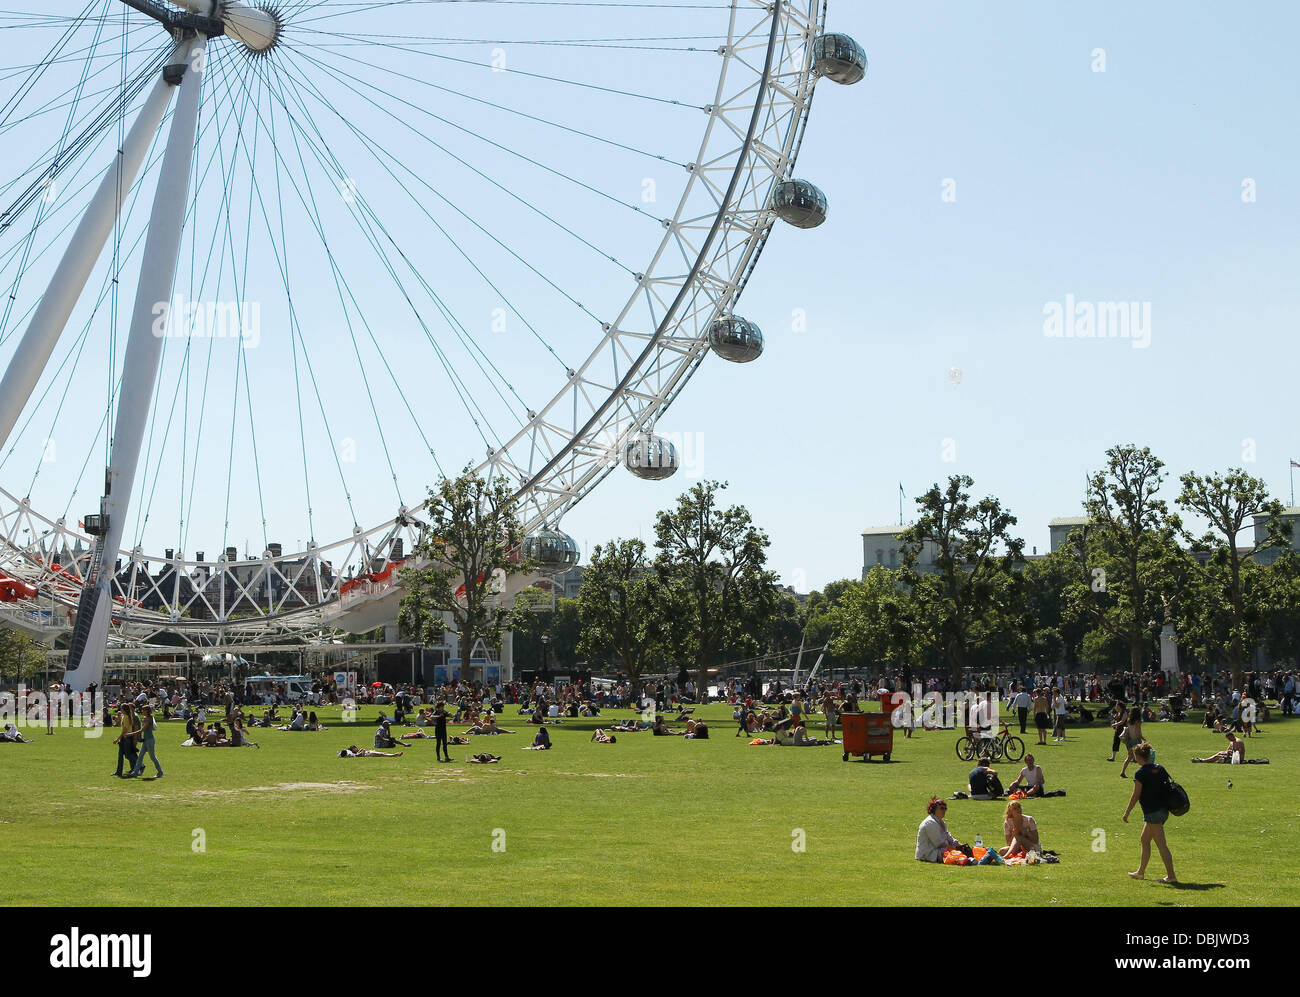 People Enjoying The Weather In London Today Is Set To Be Thetest Day Of The Year With Forecasters Predicting Temperatures Will Hit 30c 86f